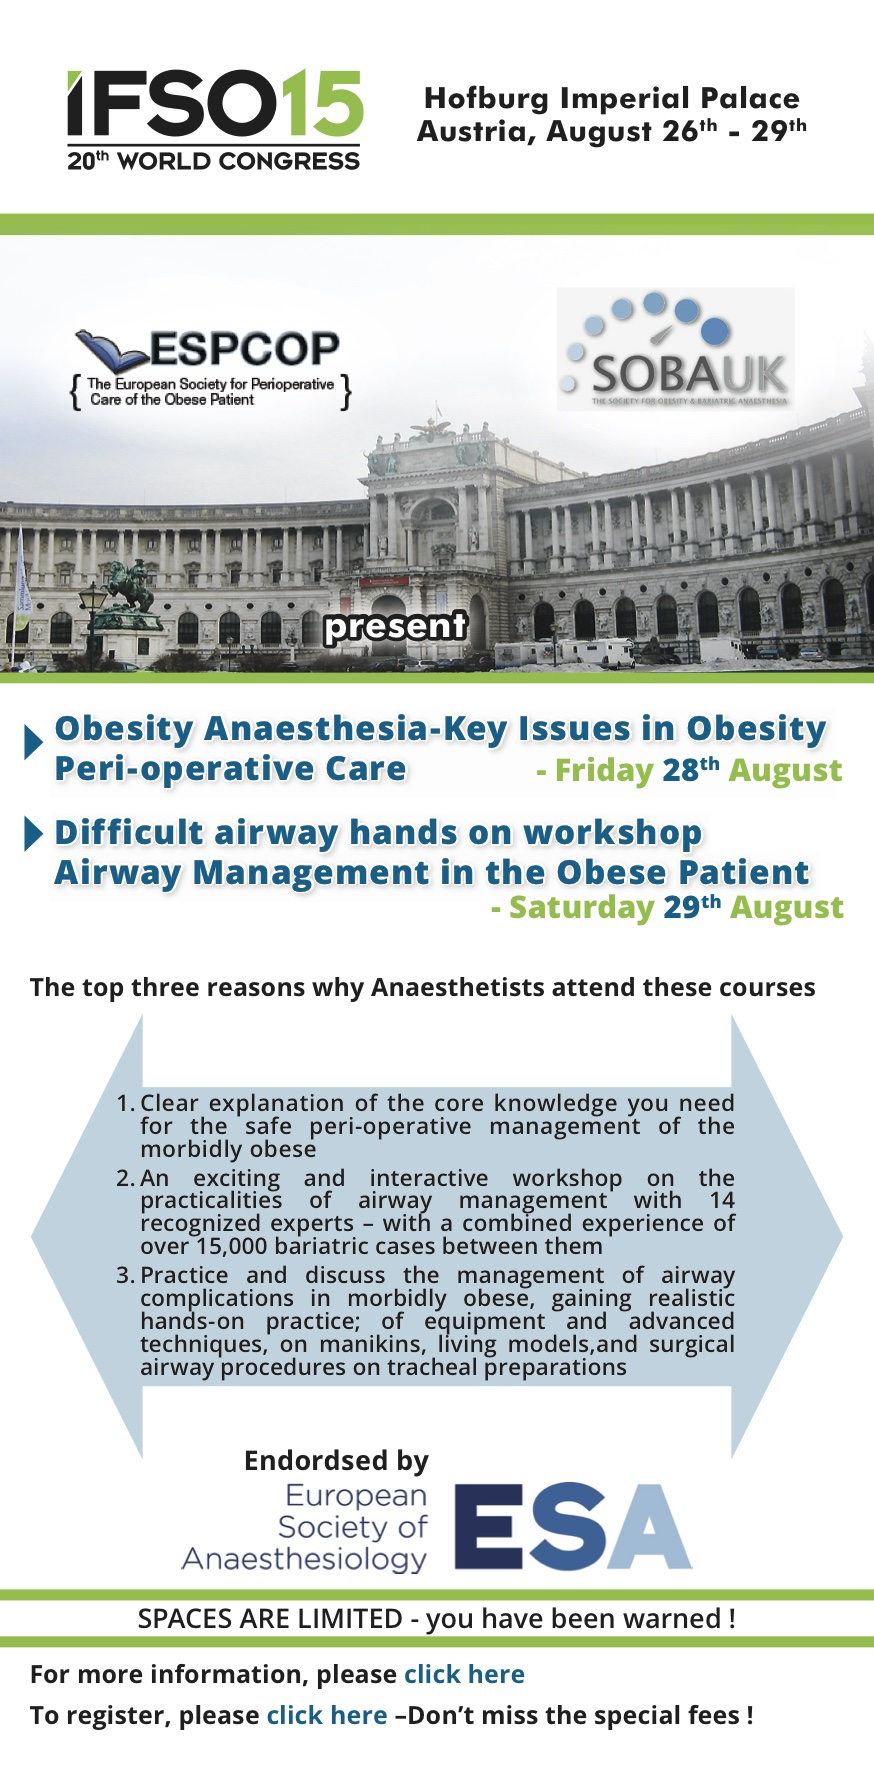 Key Issues in Obesity Anaesthesia and Scientific General Meeting ...